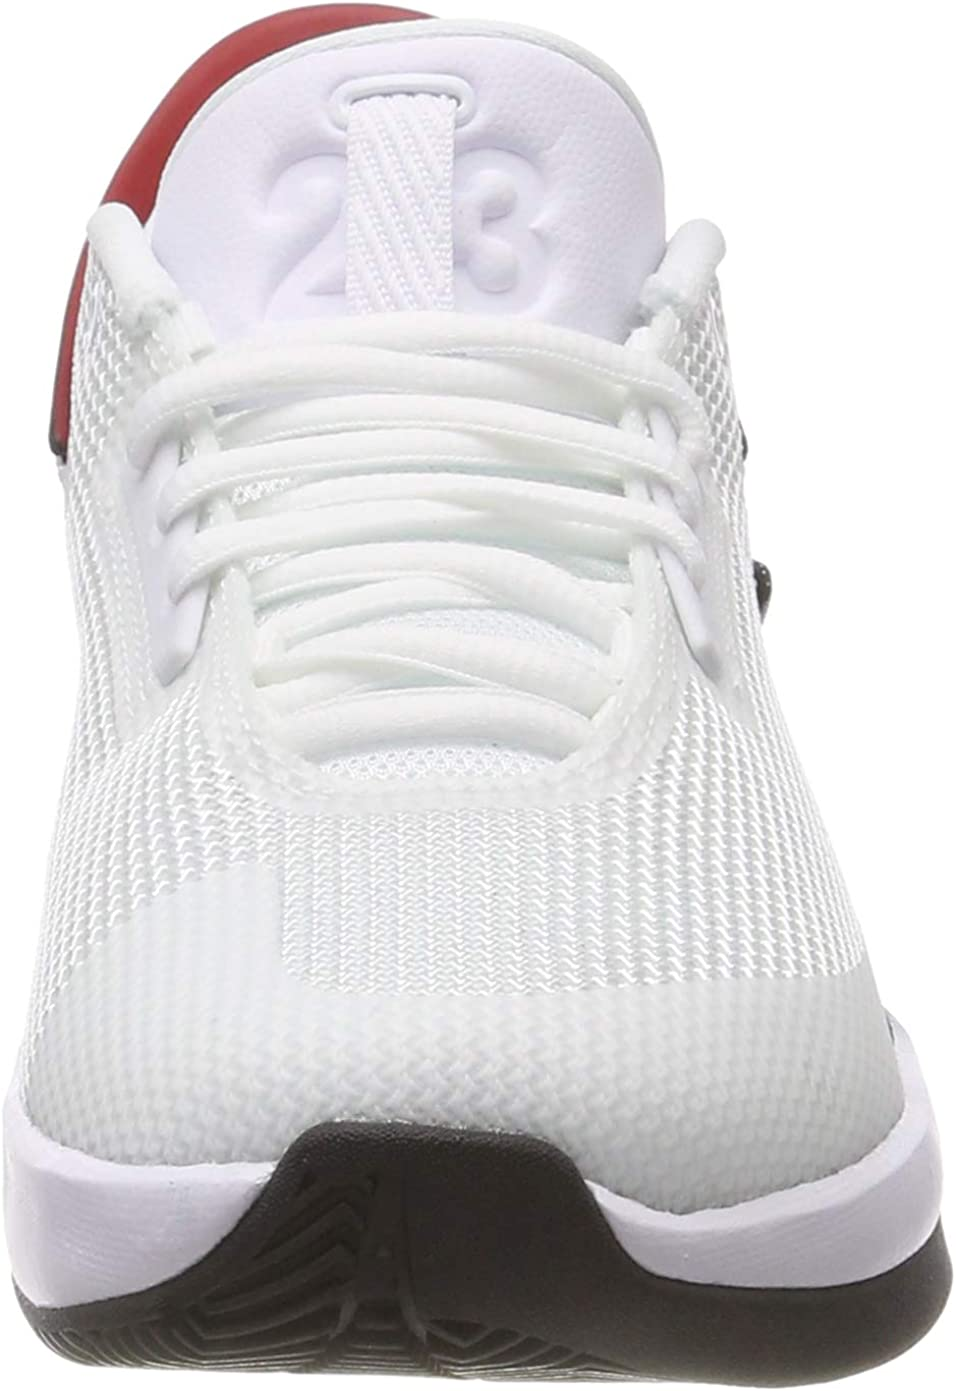 Jordan Fly Lockdown (GS), Chaussures de Basketball Homme Multicolore White Gym Red Black 100